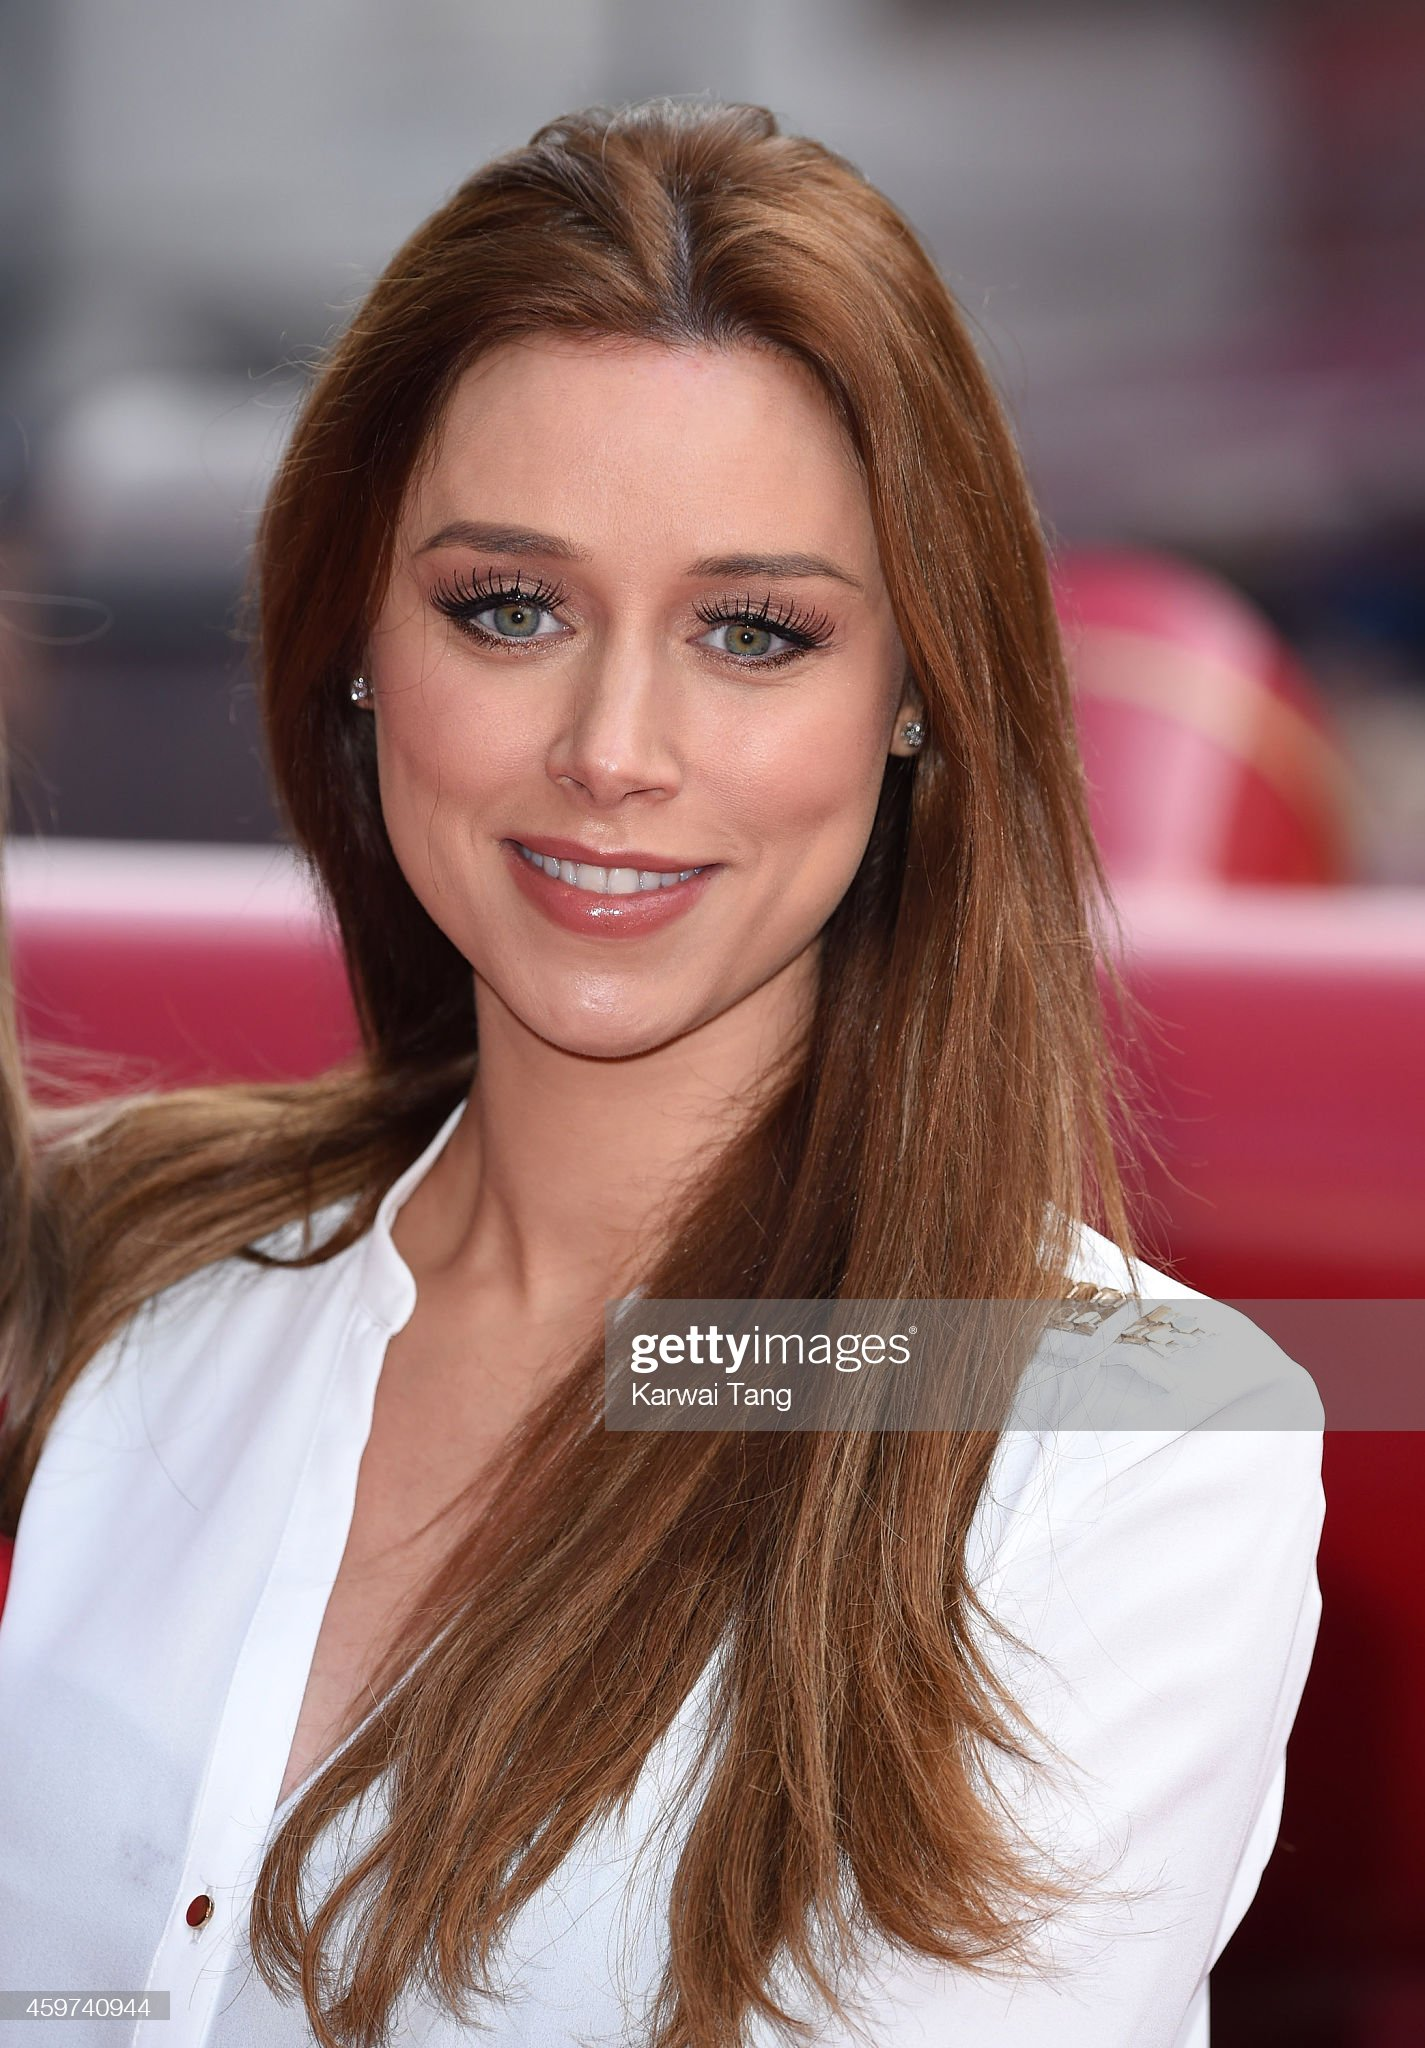 Ojos verdes - Famosas y famosos con los ojos de color VERDE Una-healy-attends-the-uk-premiere-of-get-santa-at-vue-west-end-on-30-picture-id459740944?s=2048x2048